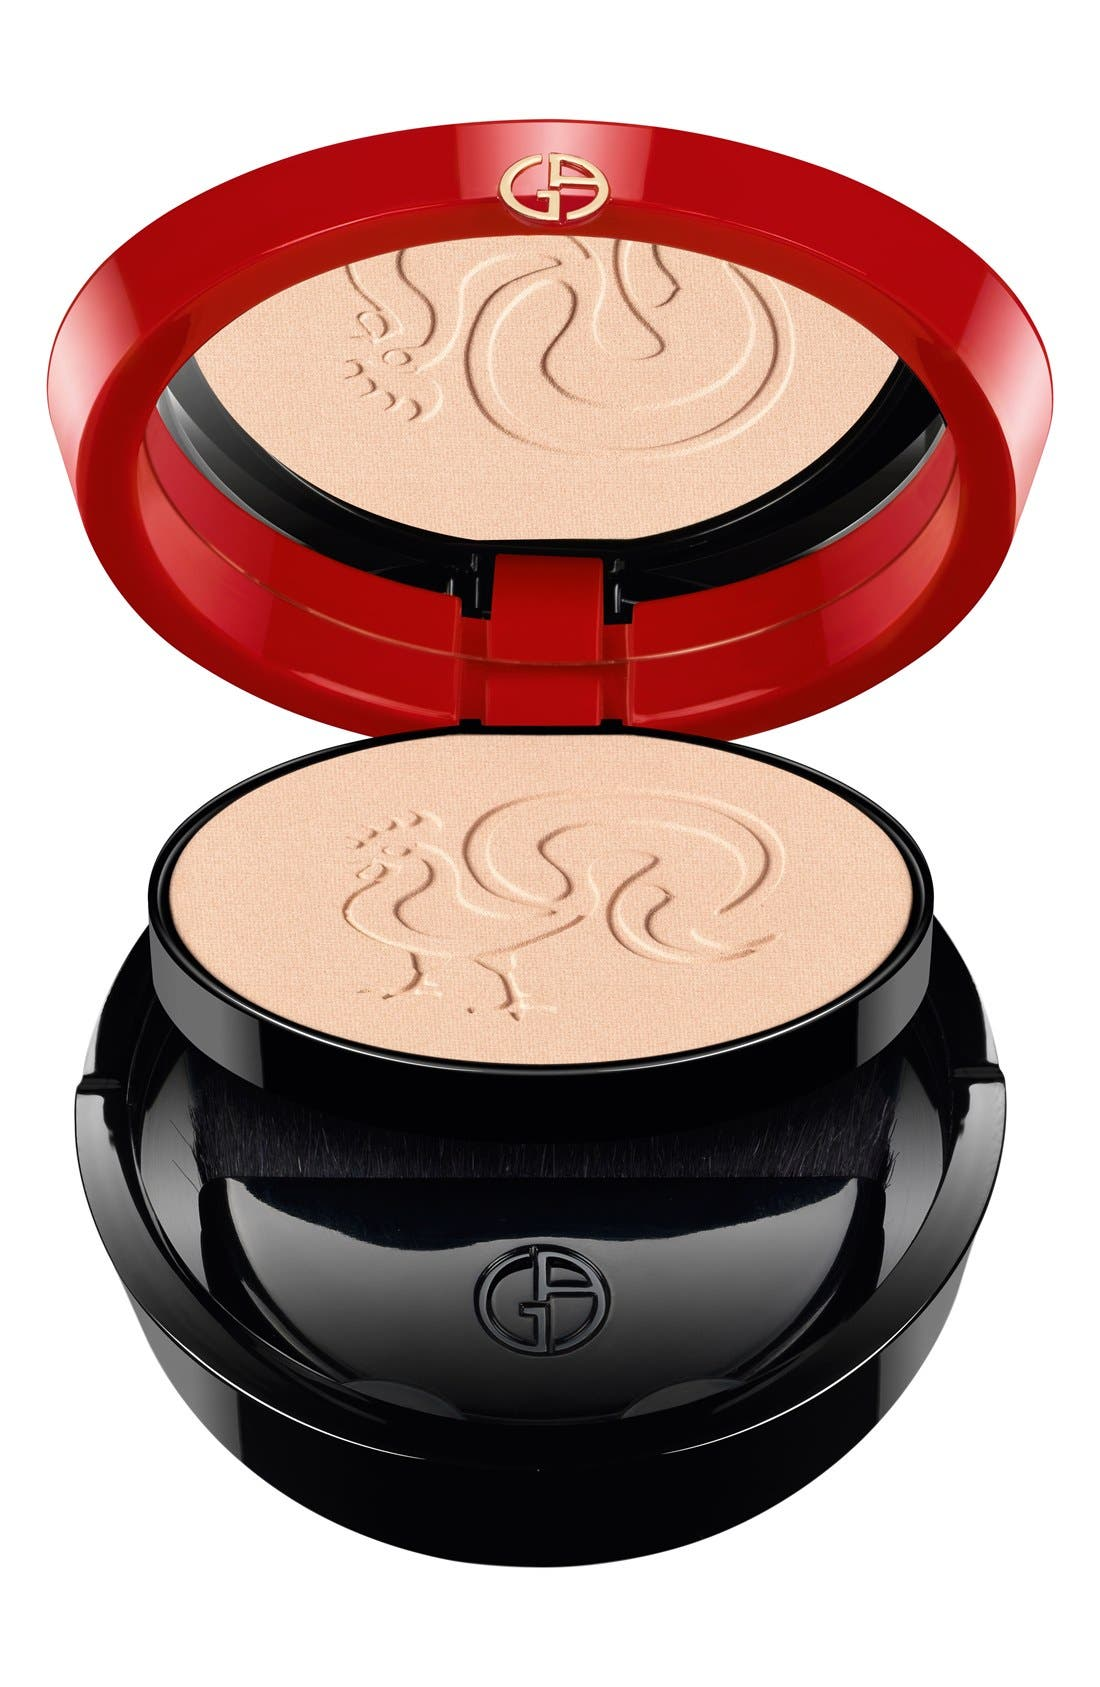 Chinese New Year Armani Glow Face Powder Compact,                             Alternate thumbnail 4, color,                             000